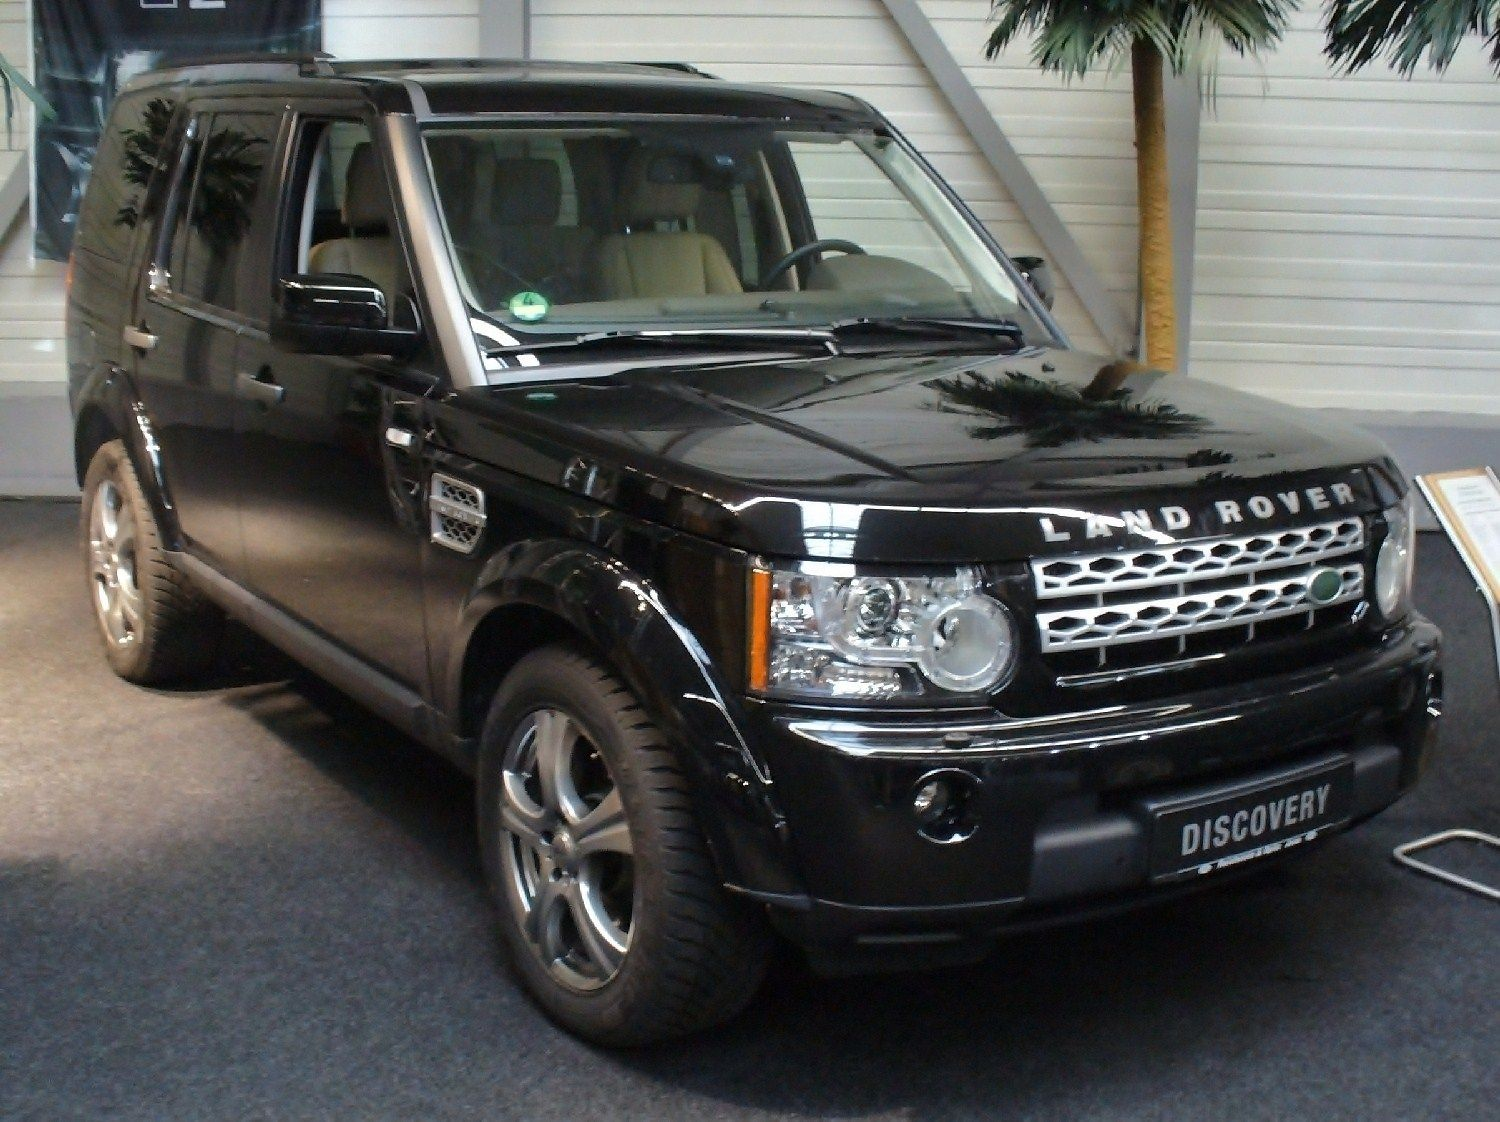 Land Rover Discovery 4! Legendary SUV Loves to go Anywhere